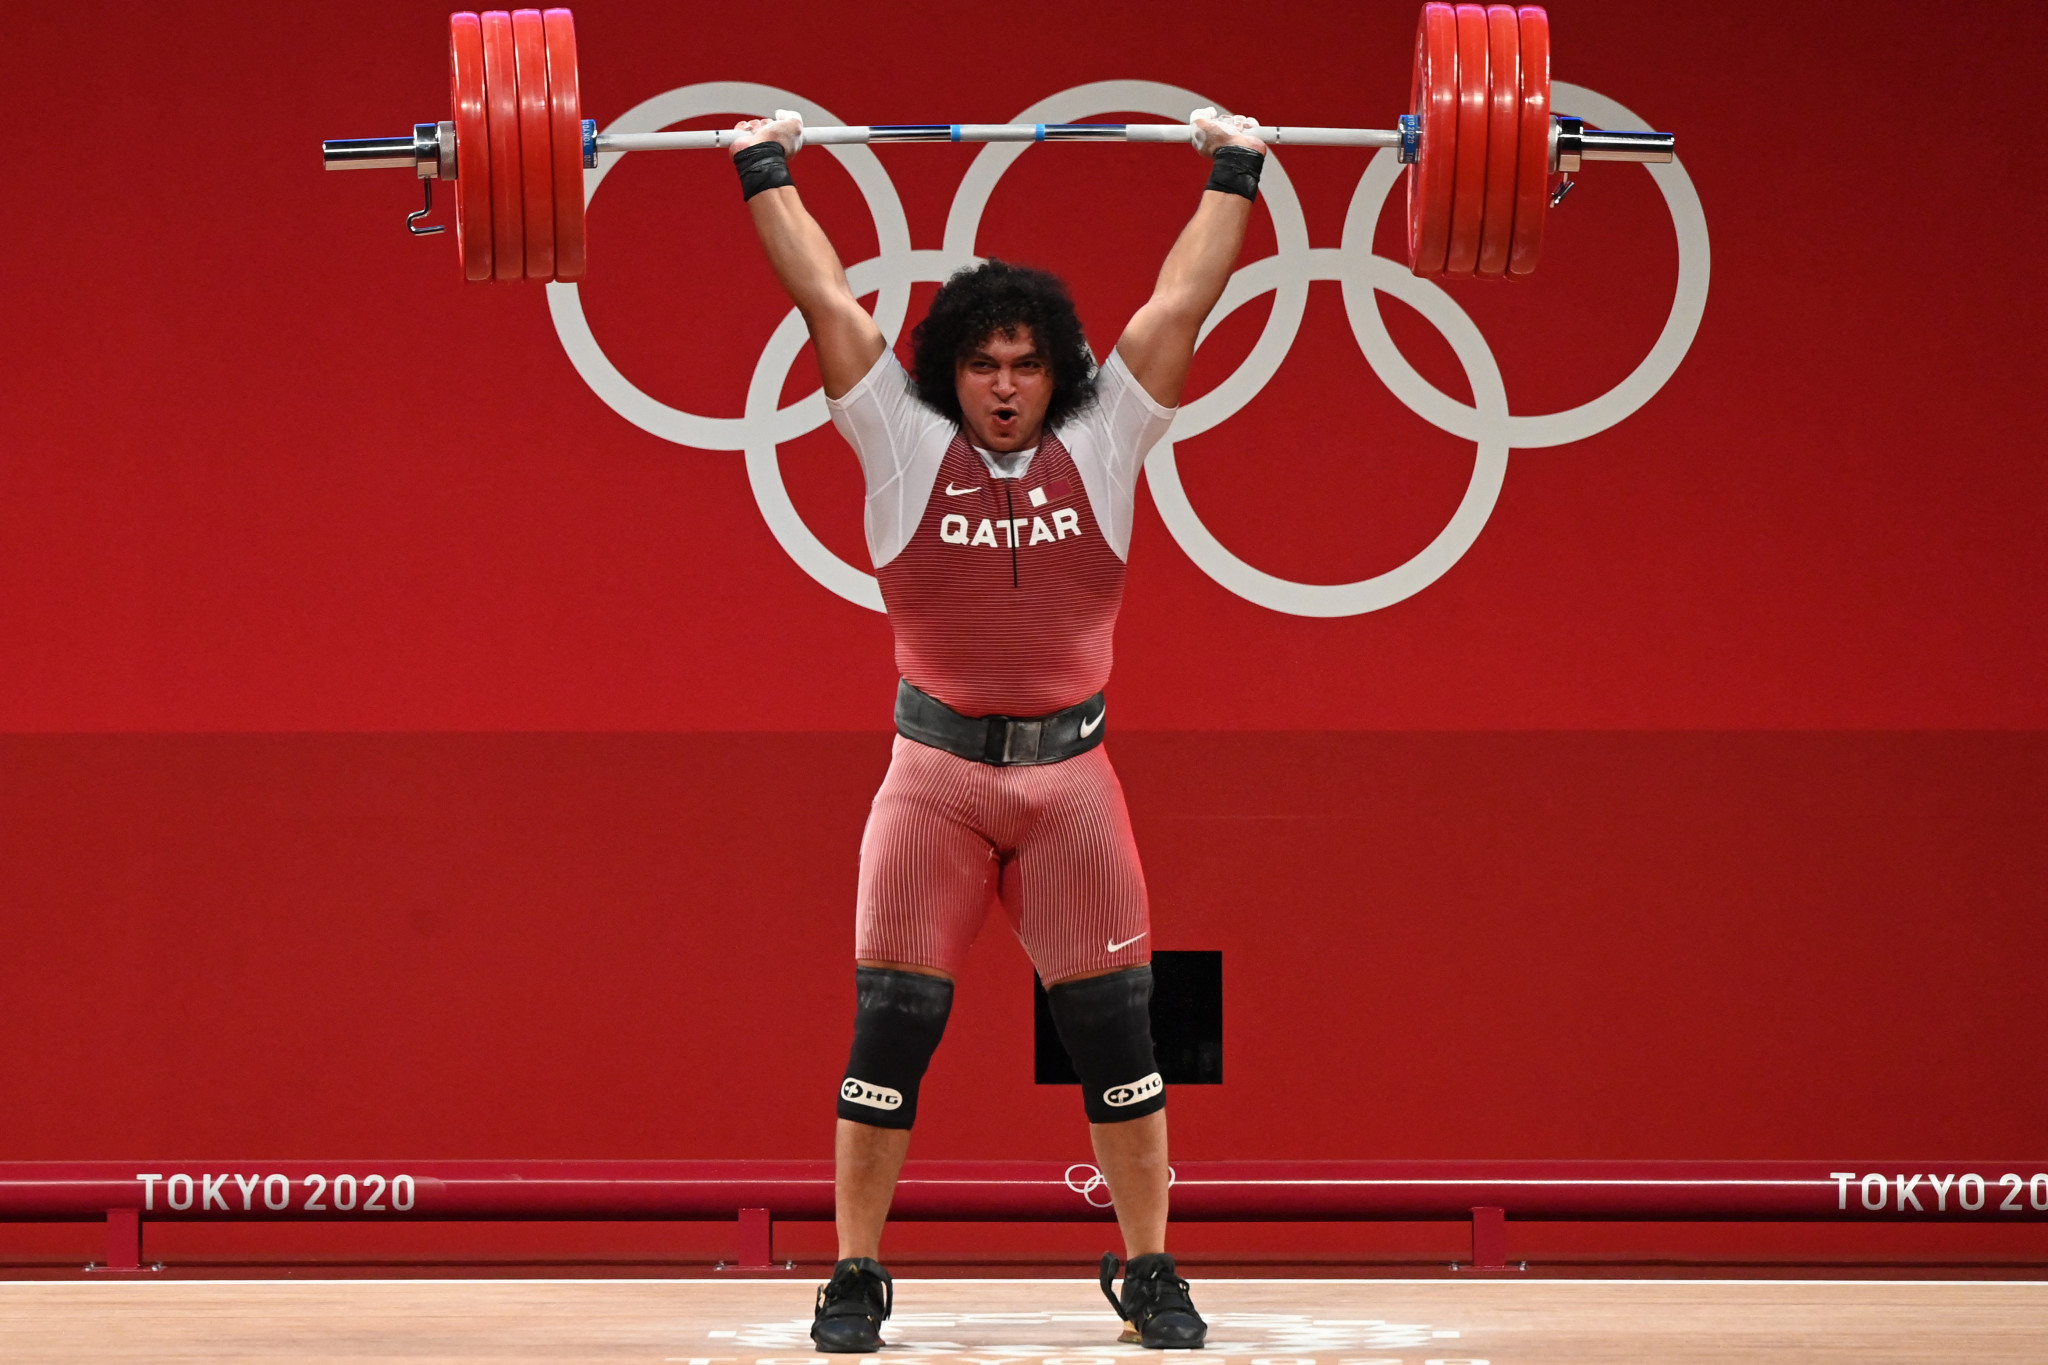 Fares Elbakh of Qatar won the country's first ever Olympic gold medal in the men's 96kg weightlifting category ©Getty Images